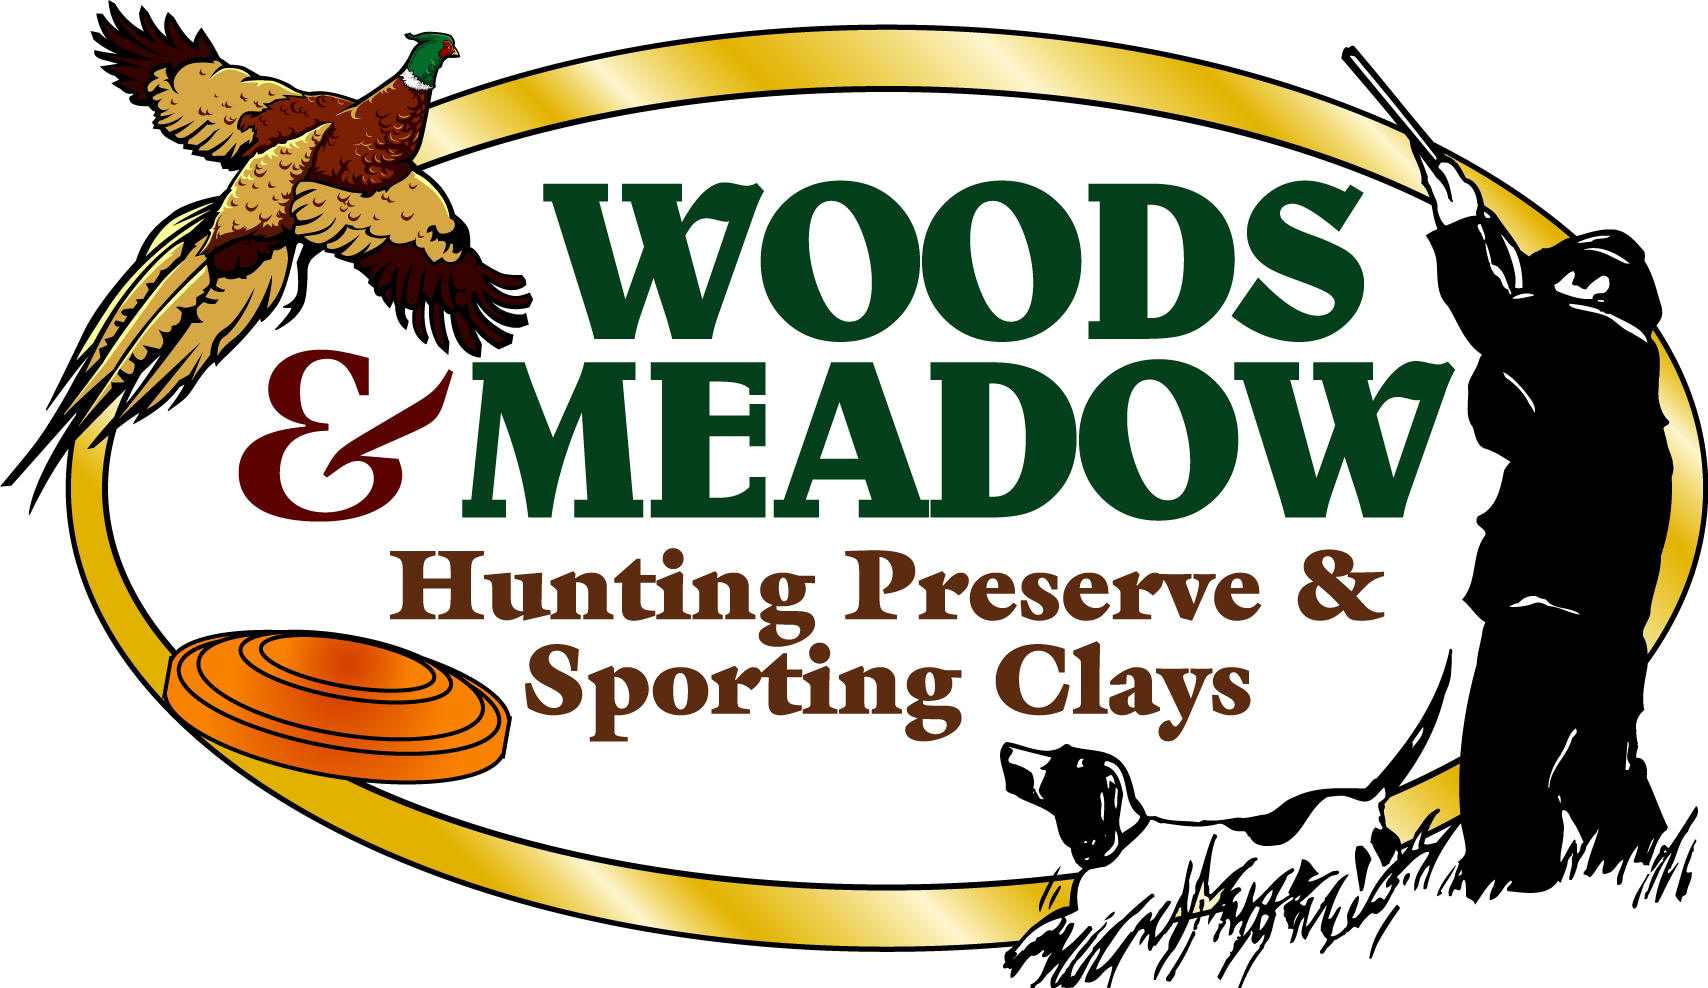 Woods & Meadow Hunting Logo